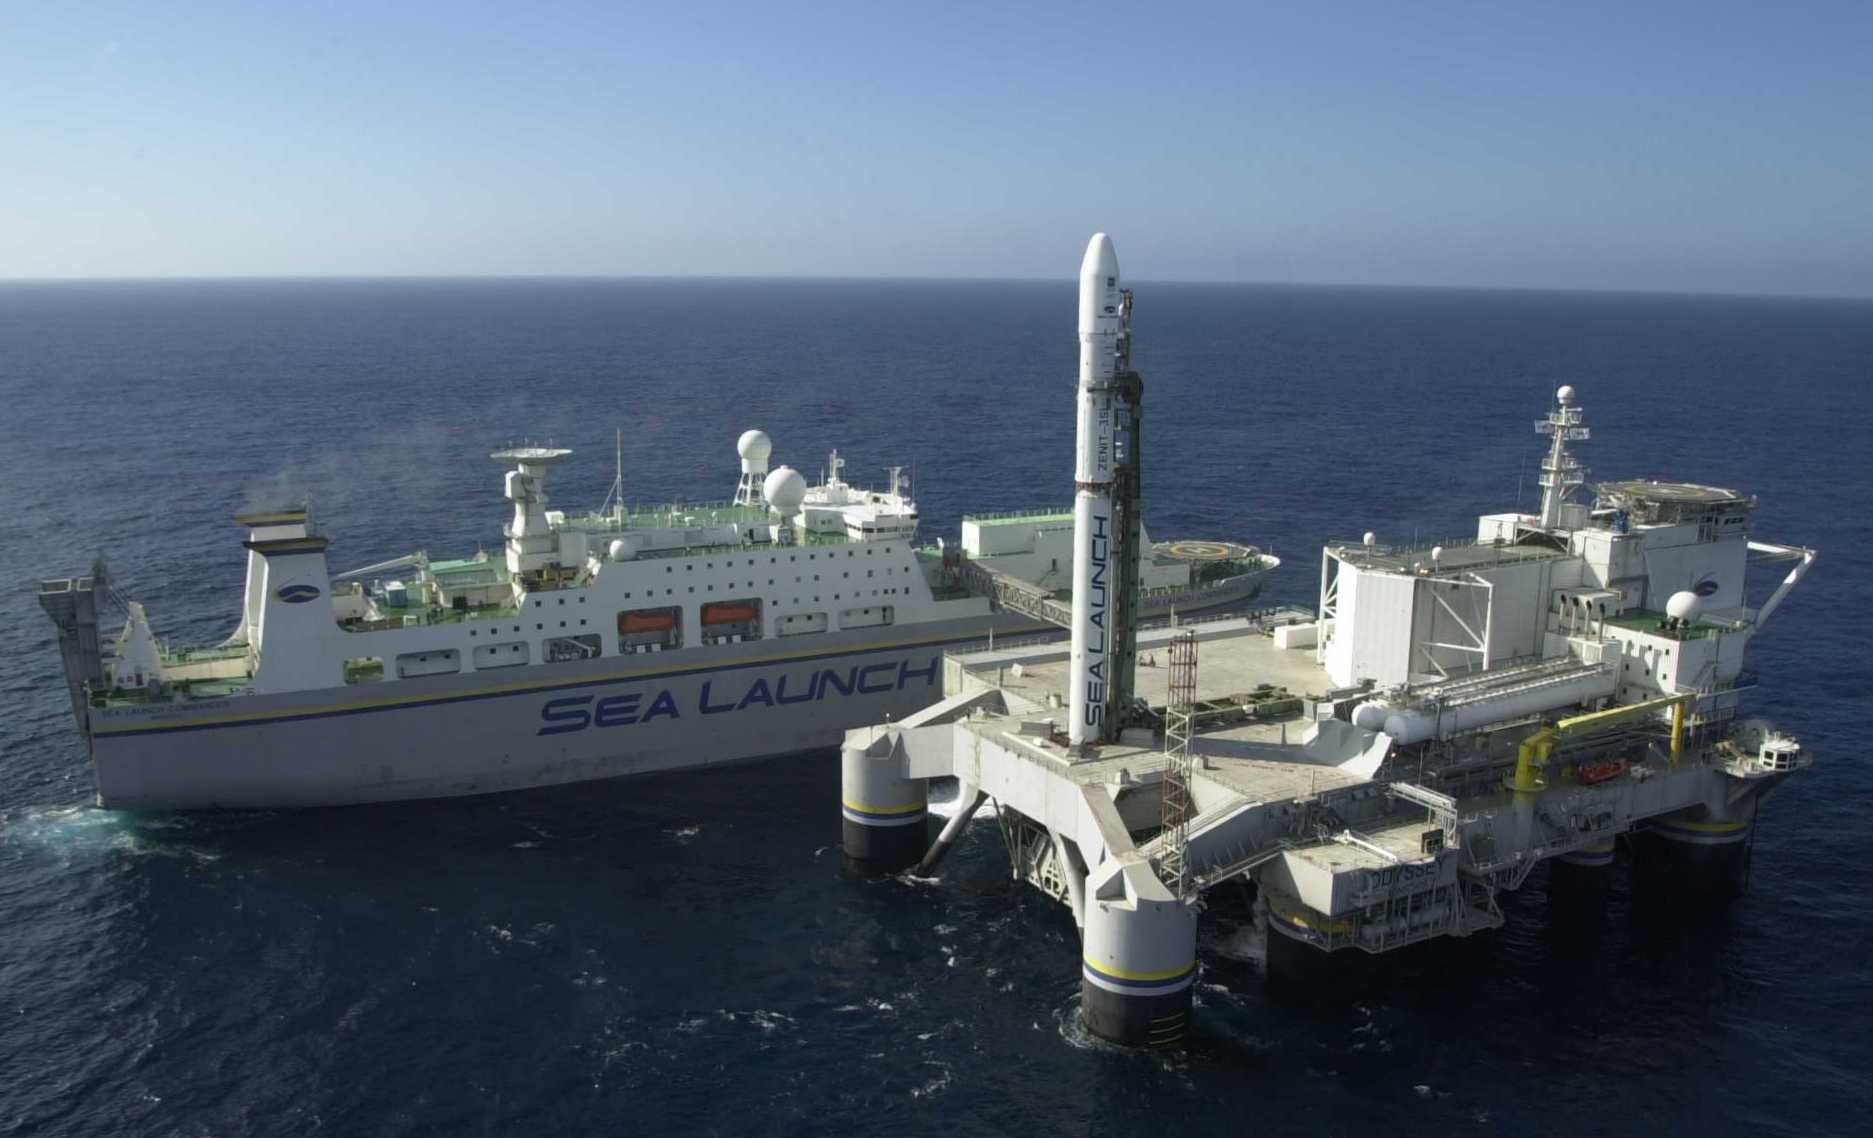 File photo of the Sea Launch Commander control ship and the Odyssey launch platform with a Zenit 3SL rocket awaiting liftoff. Credit: Sea Launch